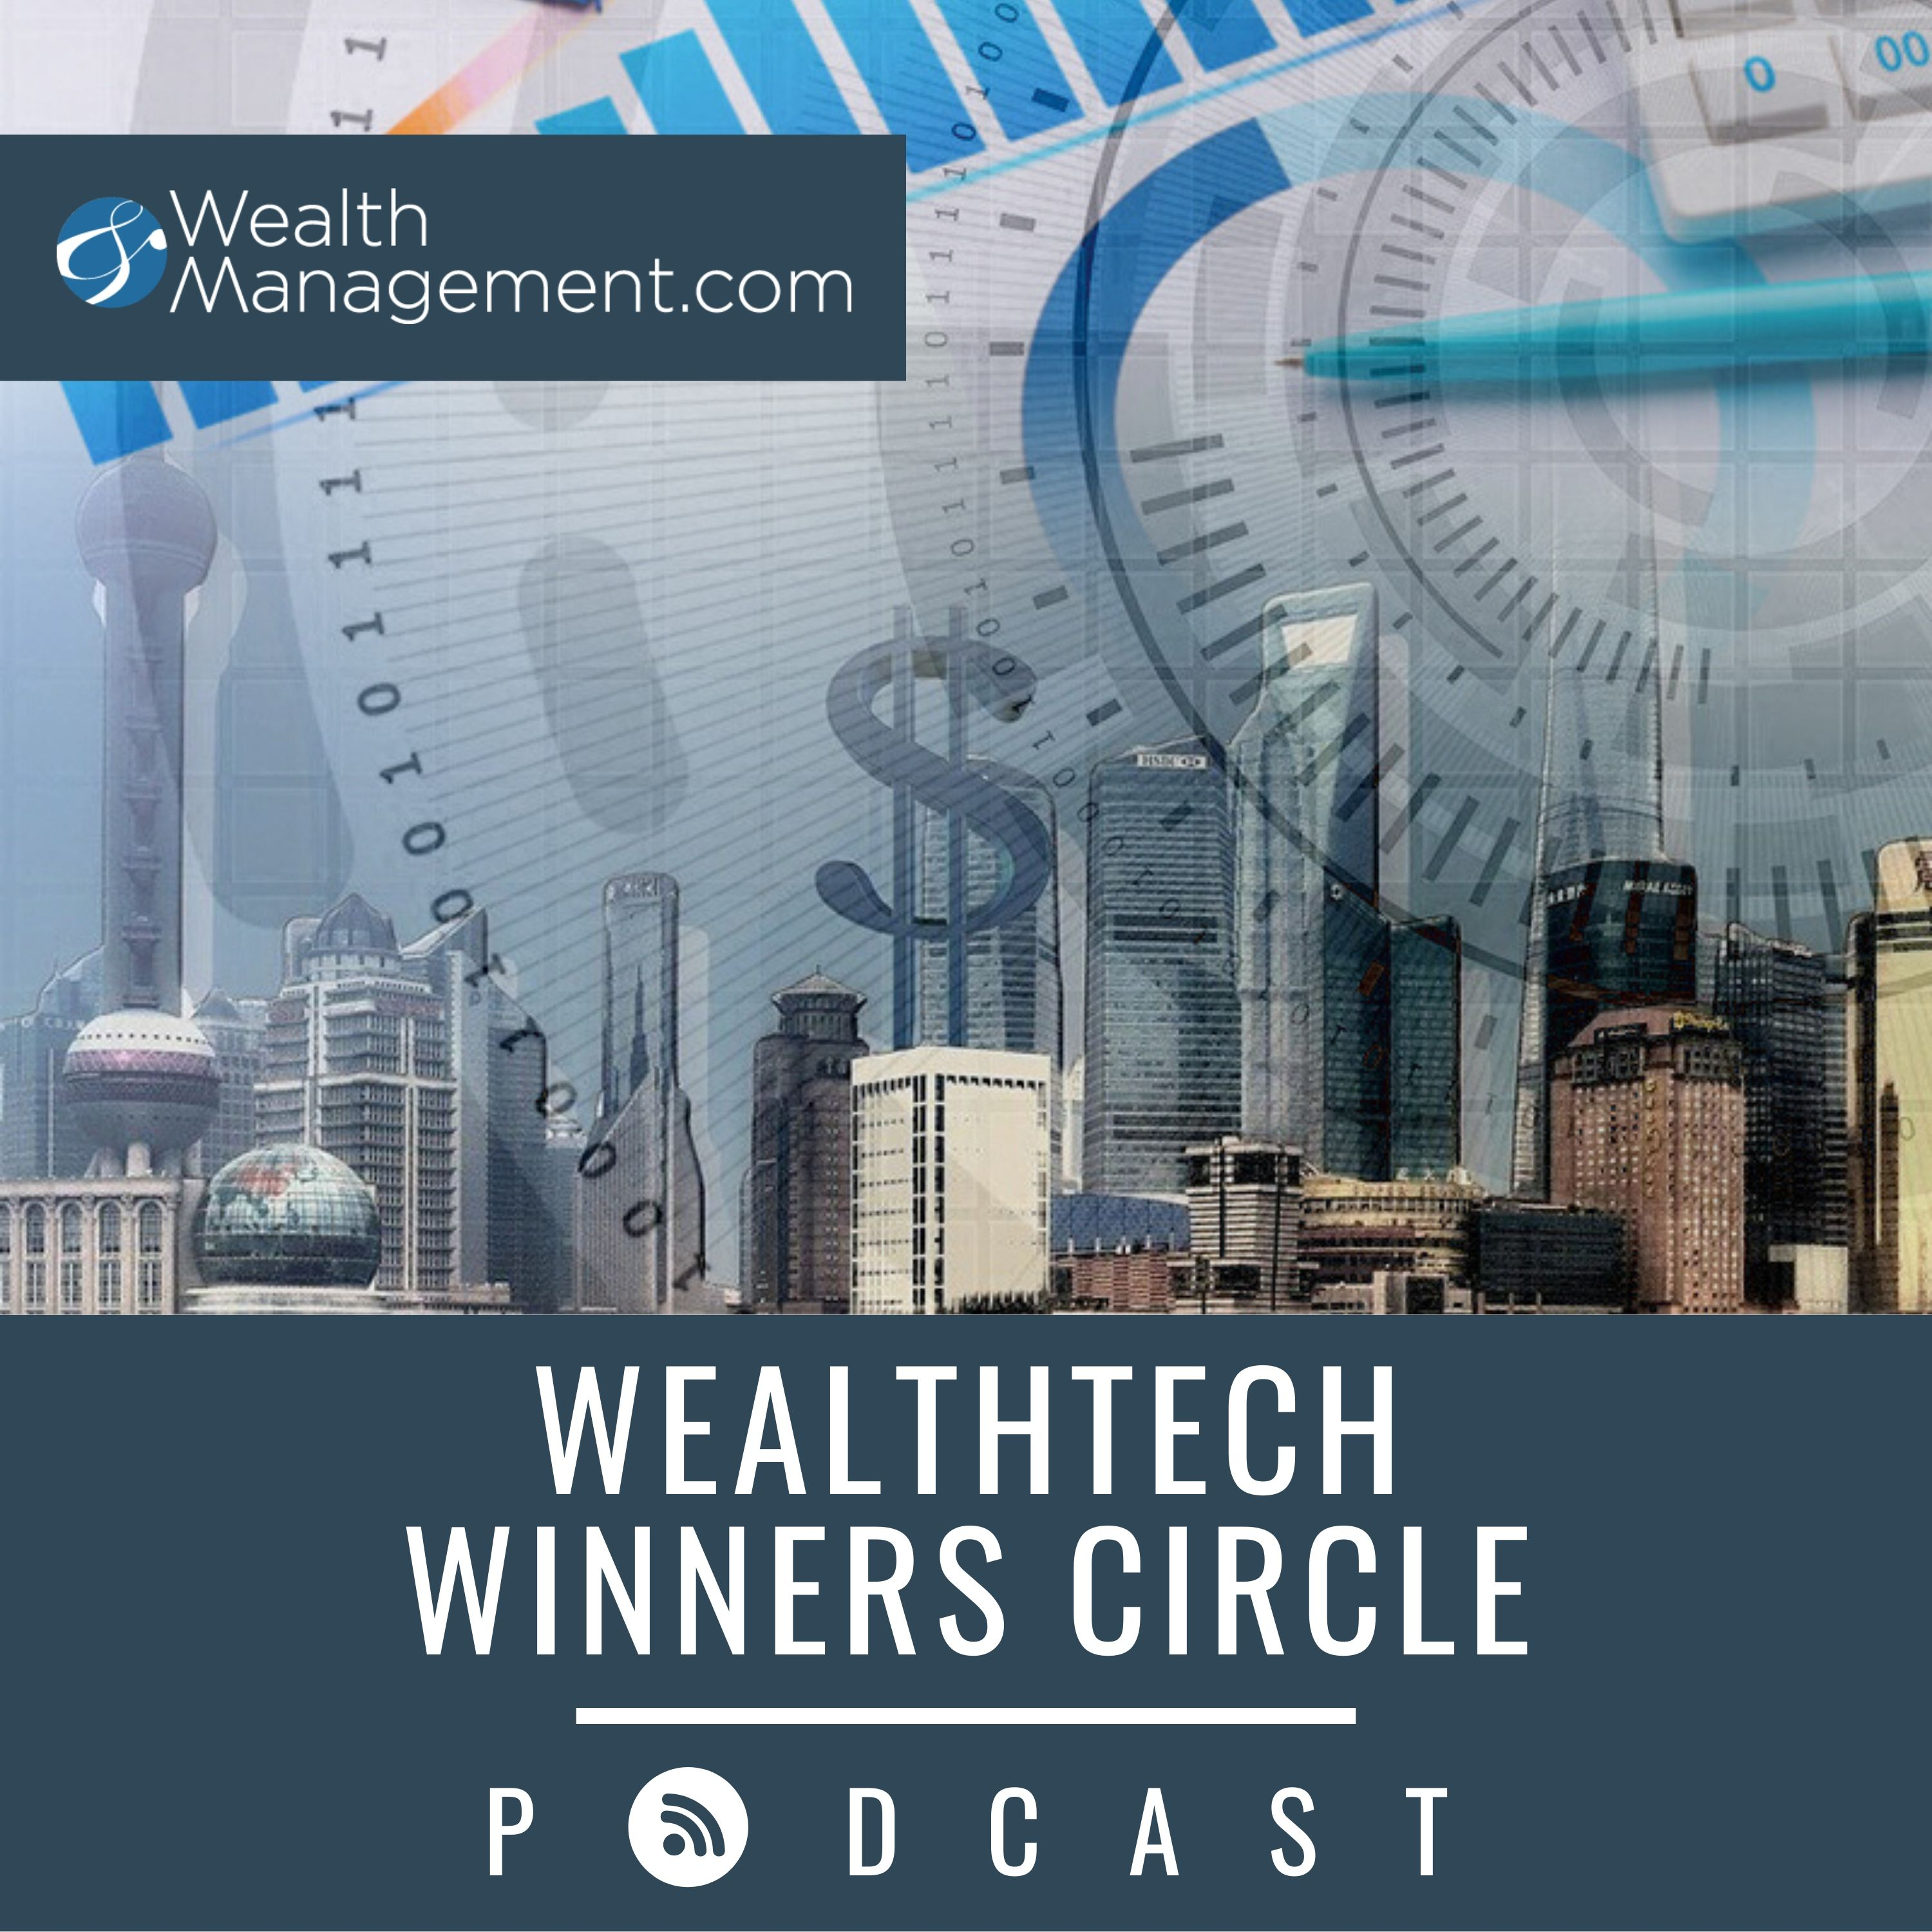 WealthTech Winners Circle